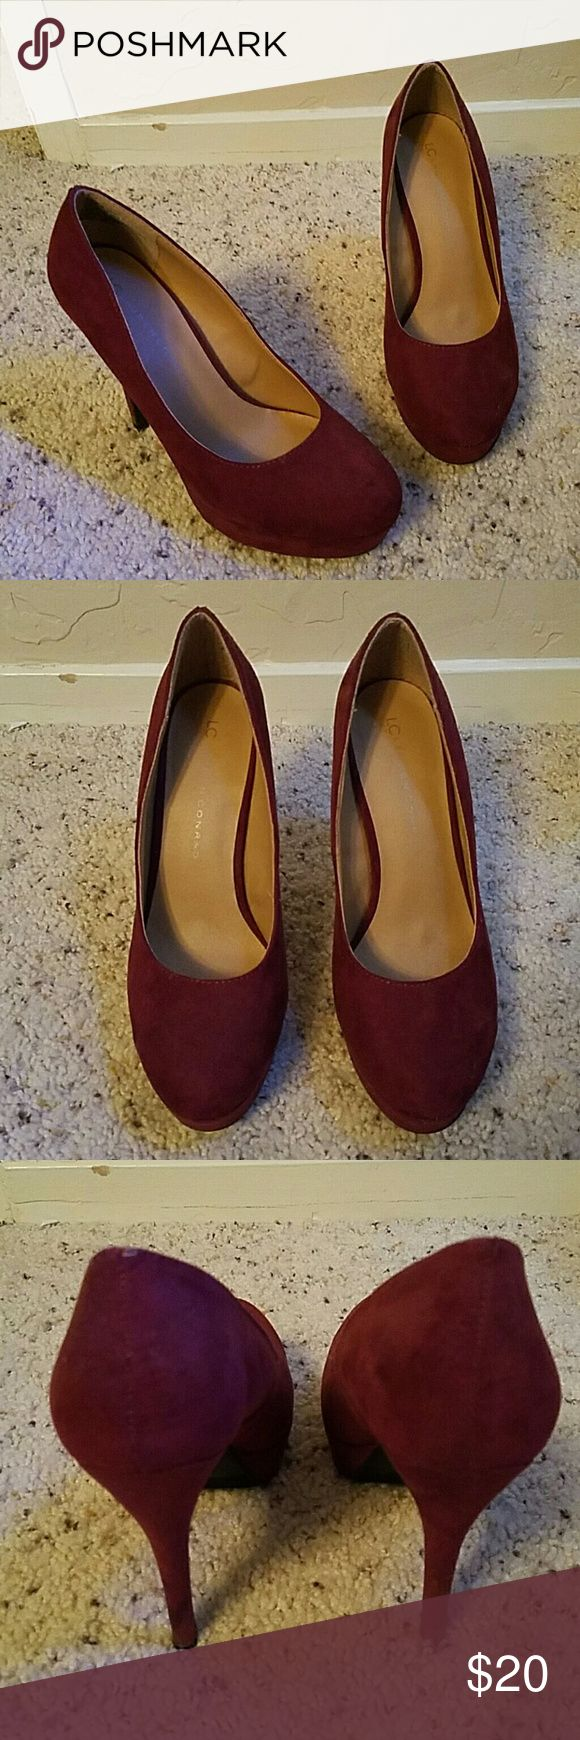 LC Lauren Conrad heels Maroon heel in good condition.  Fits a true size 8 foot LC Lauren Conrad Shoes Heels